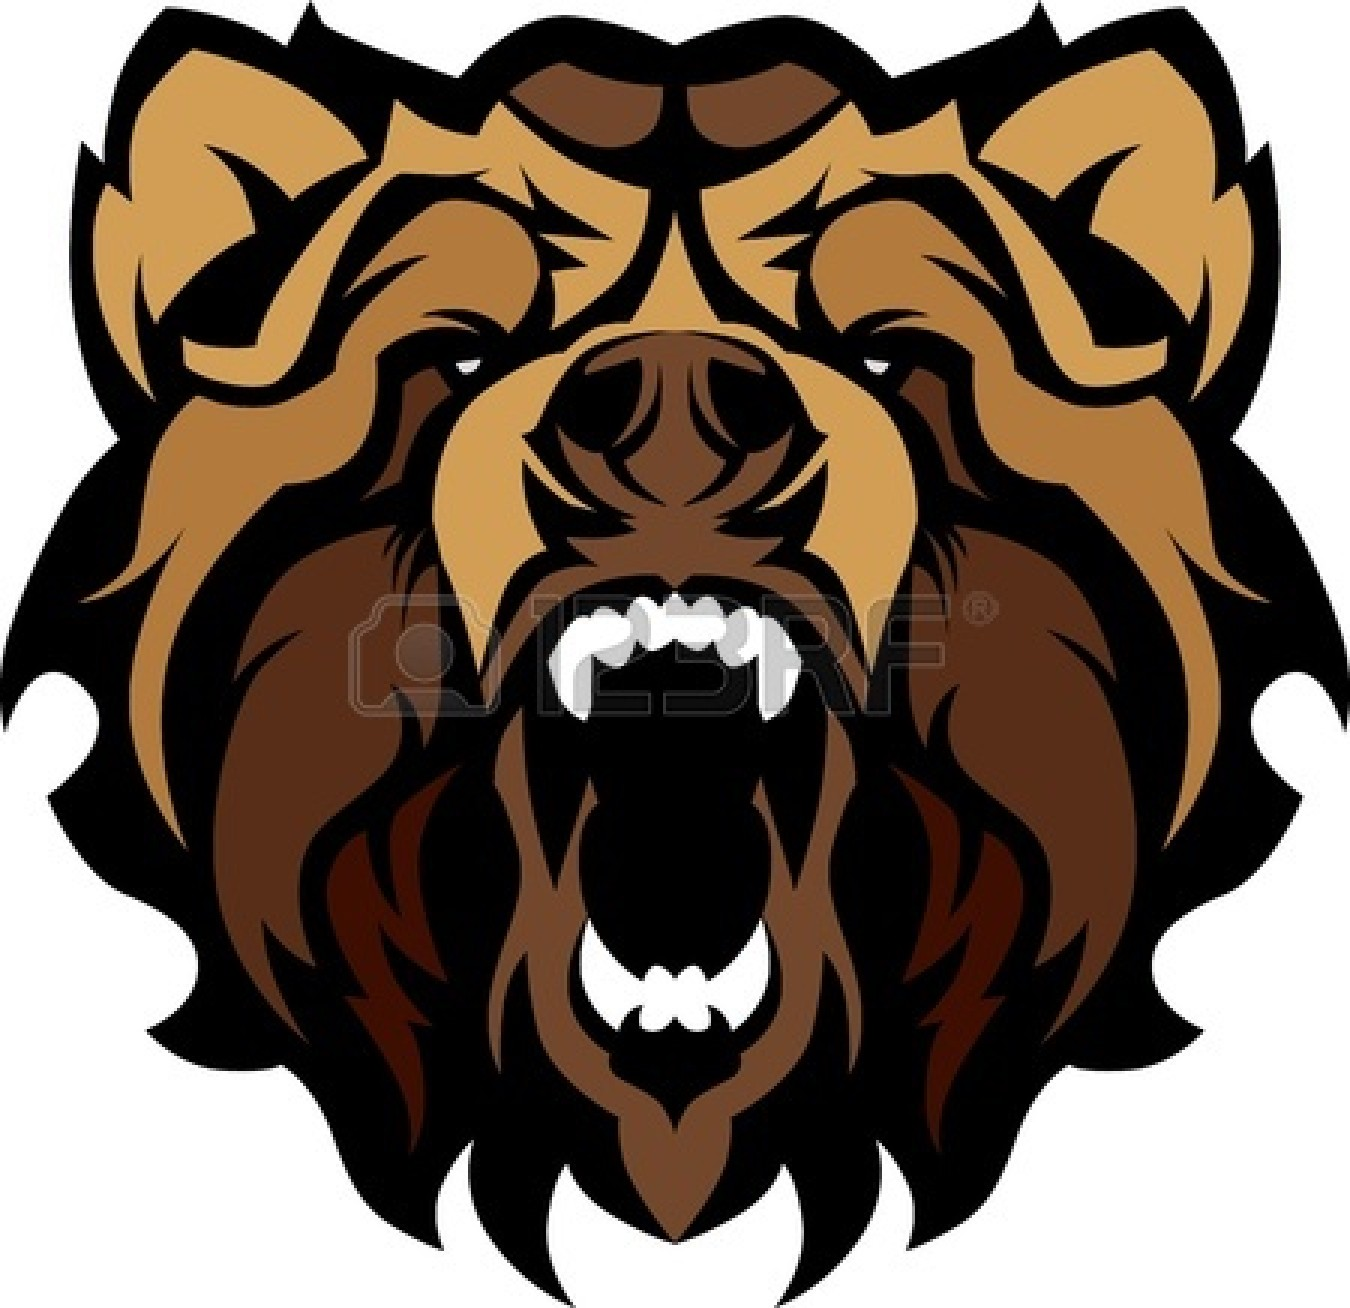 Growling Grizzly Bear Clipart.